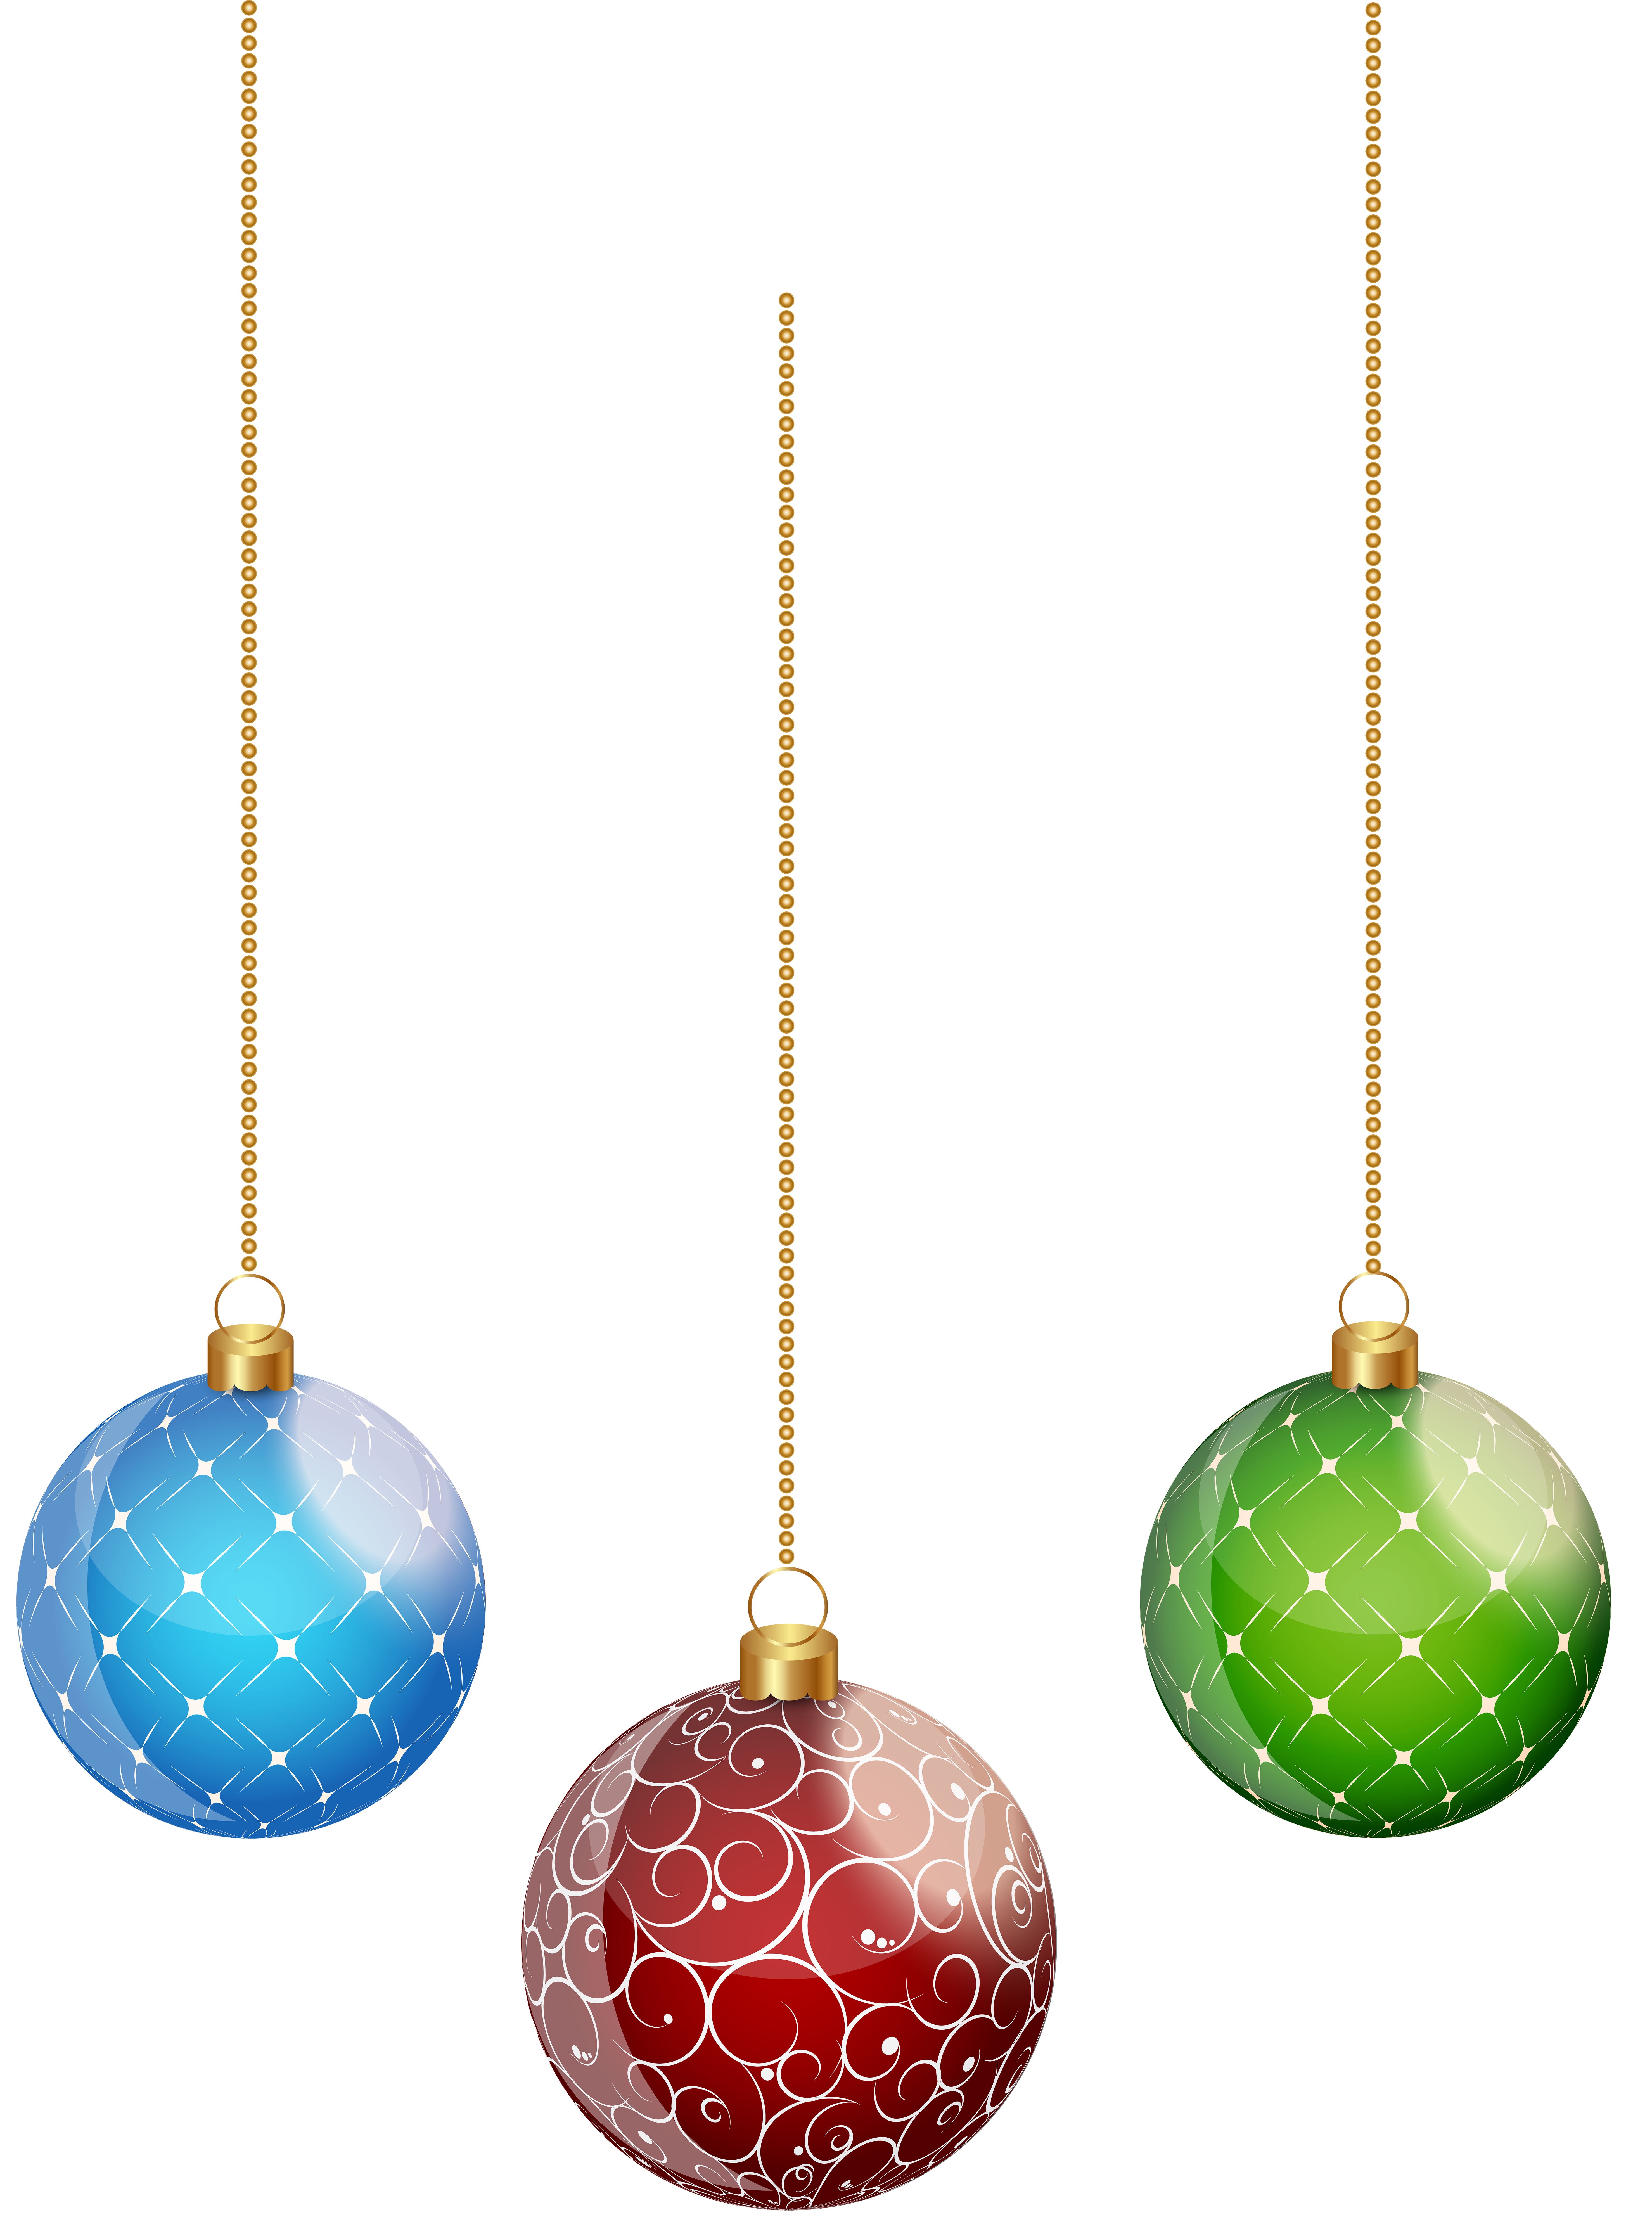 Christmas Ball Clipart at GetDrawings | Free download